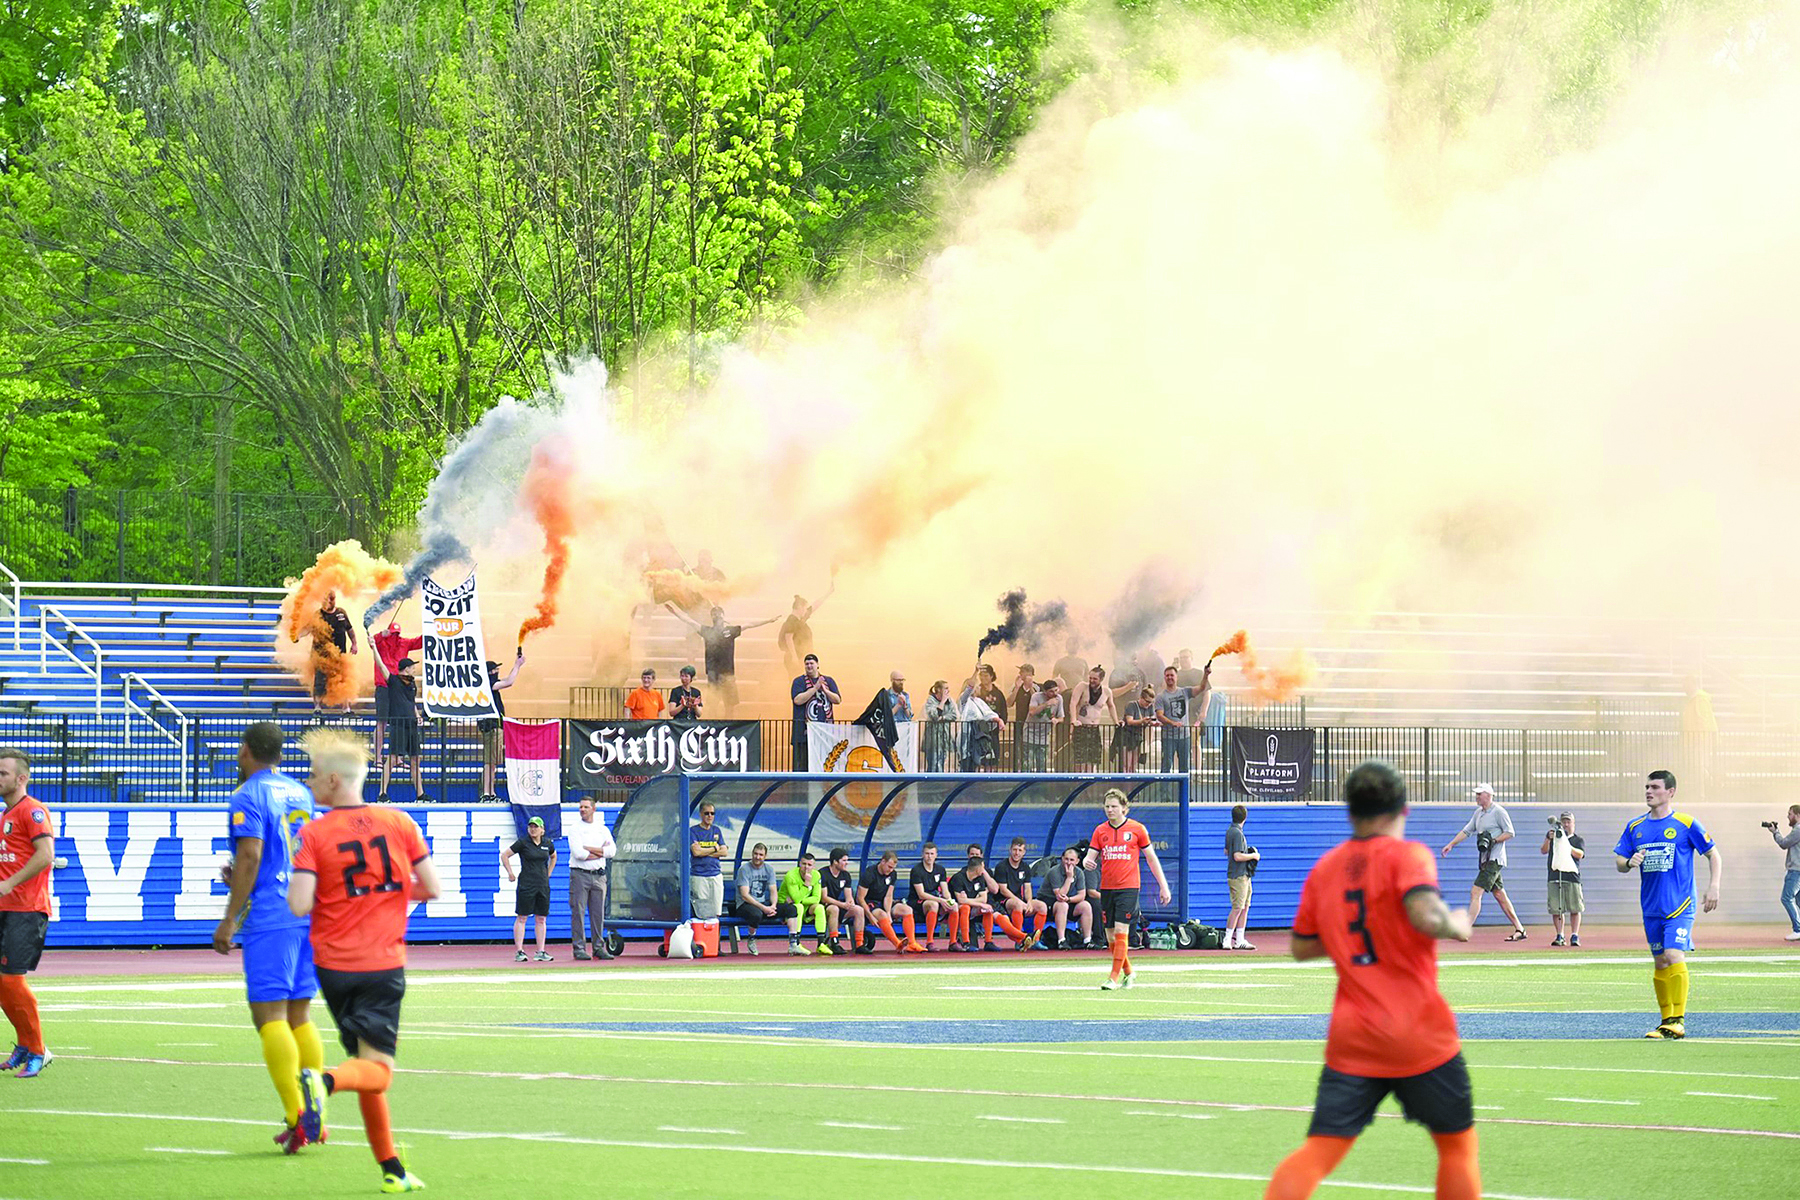 Cleveland SC playing in front of a smoky fanbase. Photo courtesy of Jason Harf (J Harf Media)